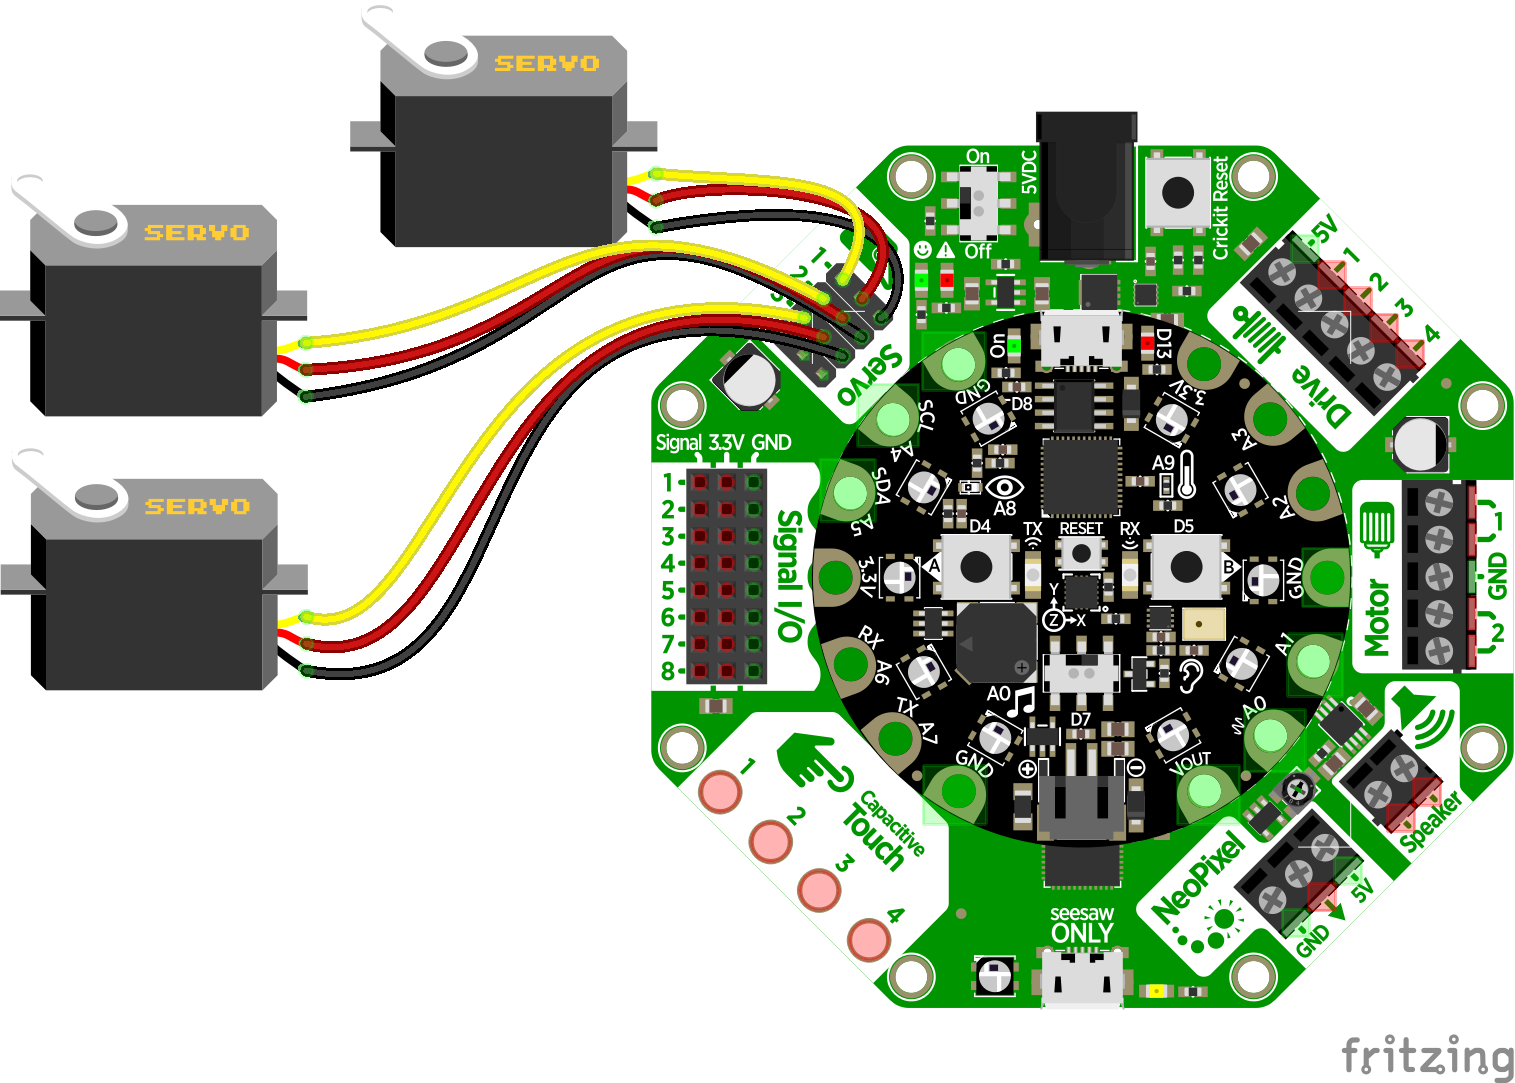 circuit_playground_projects_3_servos_bb.png